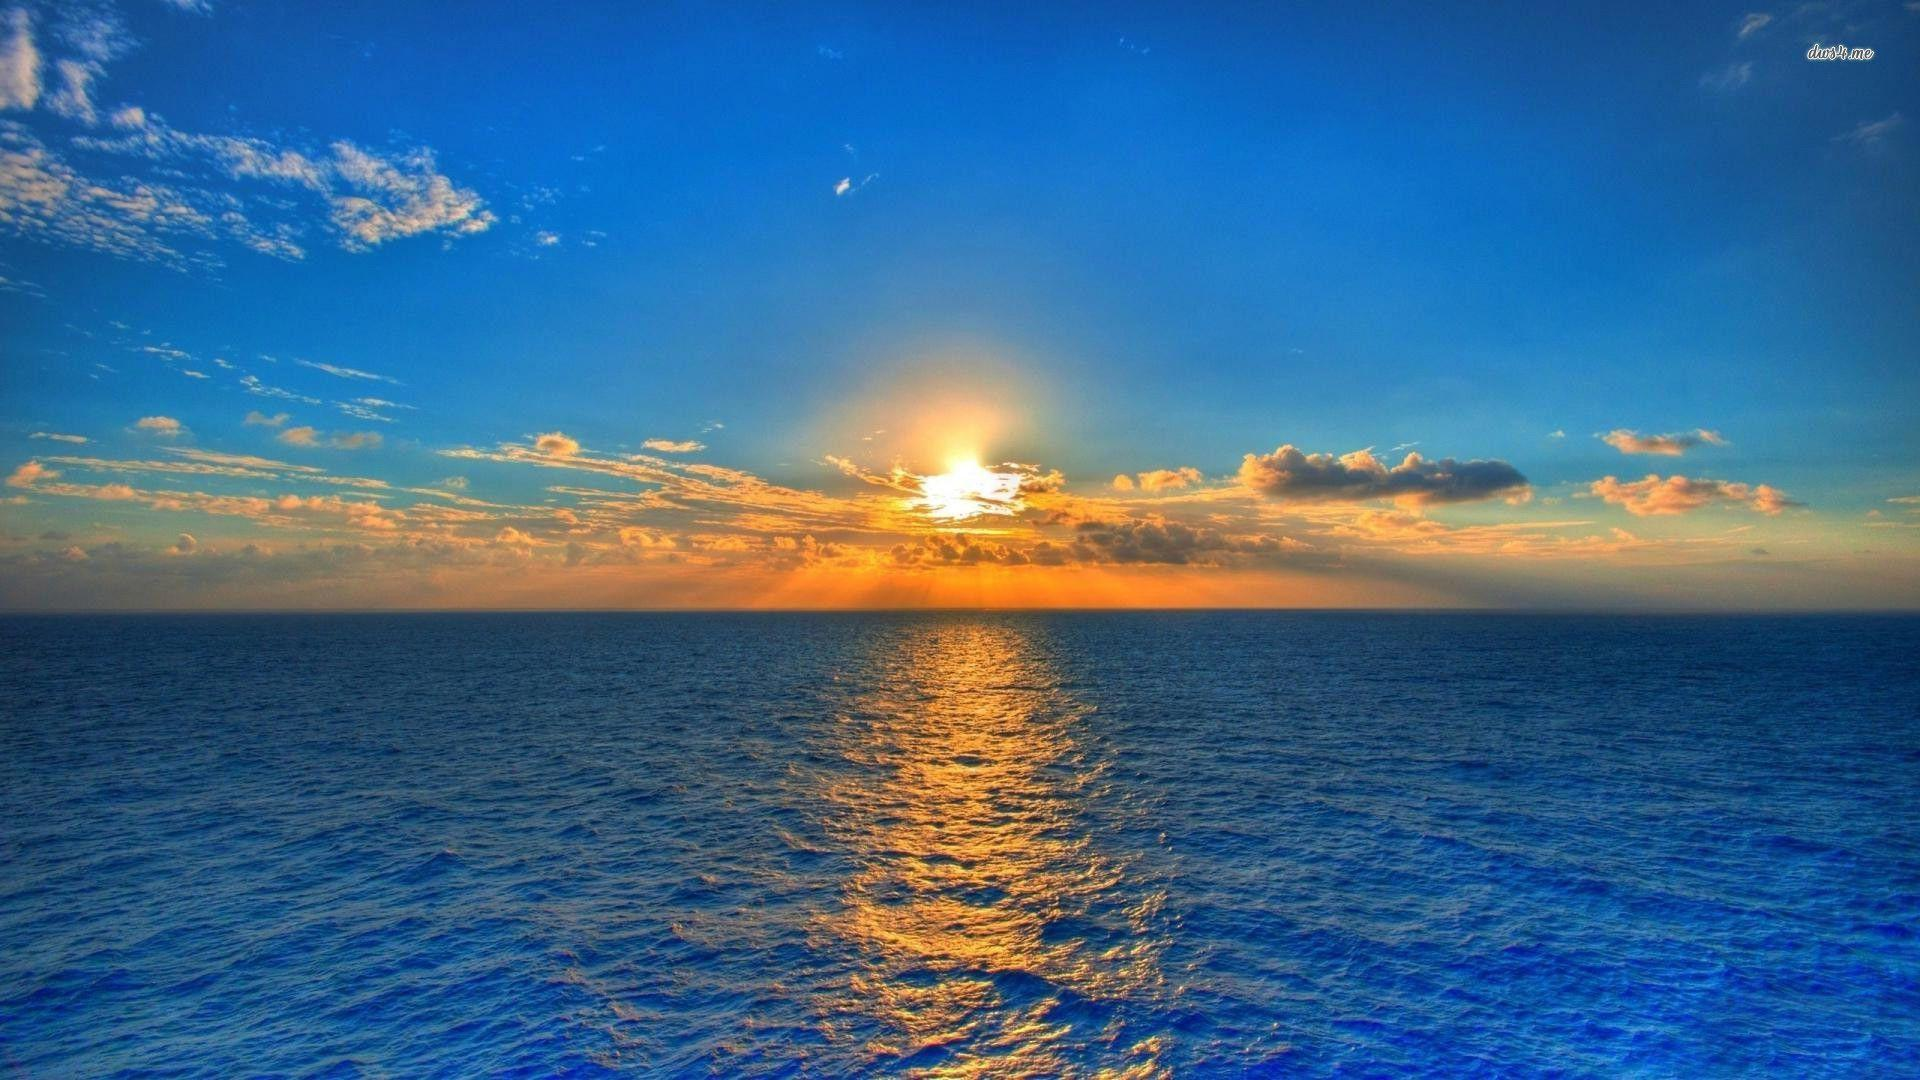 ocean sunset wallpaper desktop sunset backgrounds pictures wallpaper cave 313